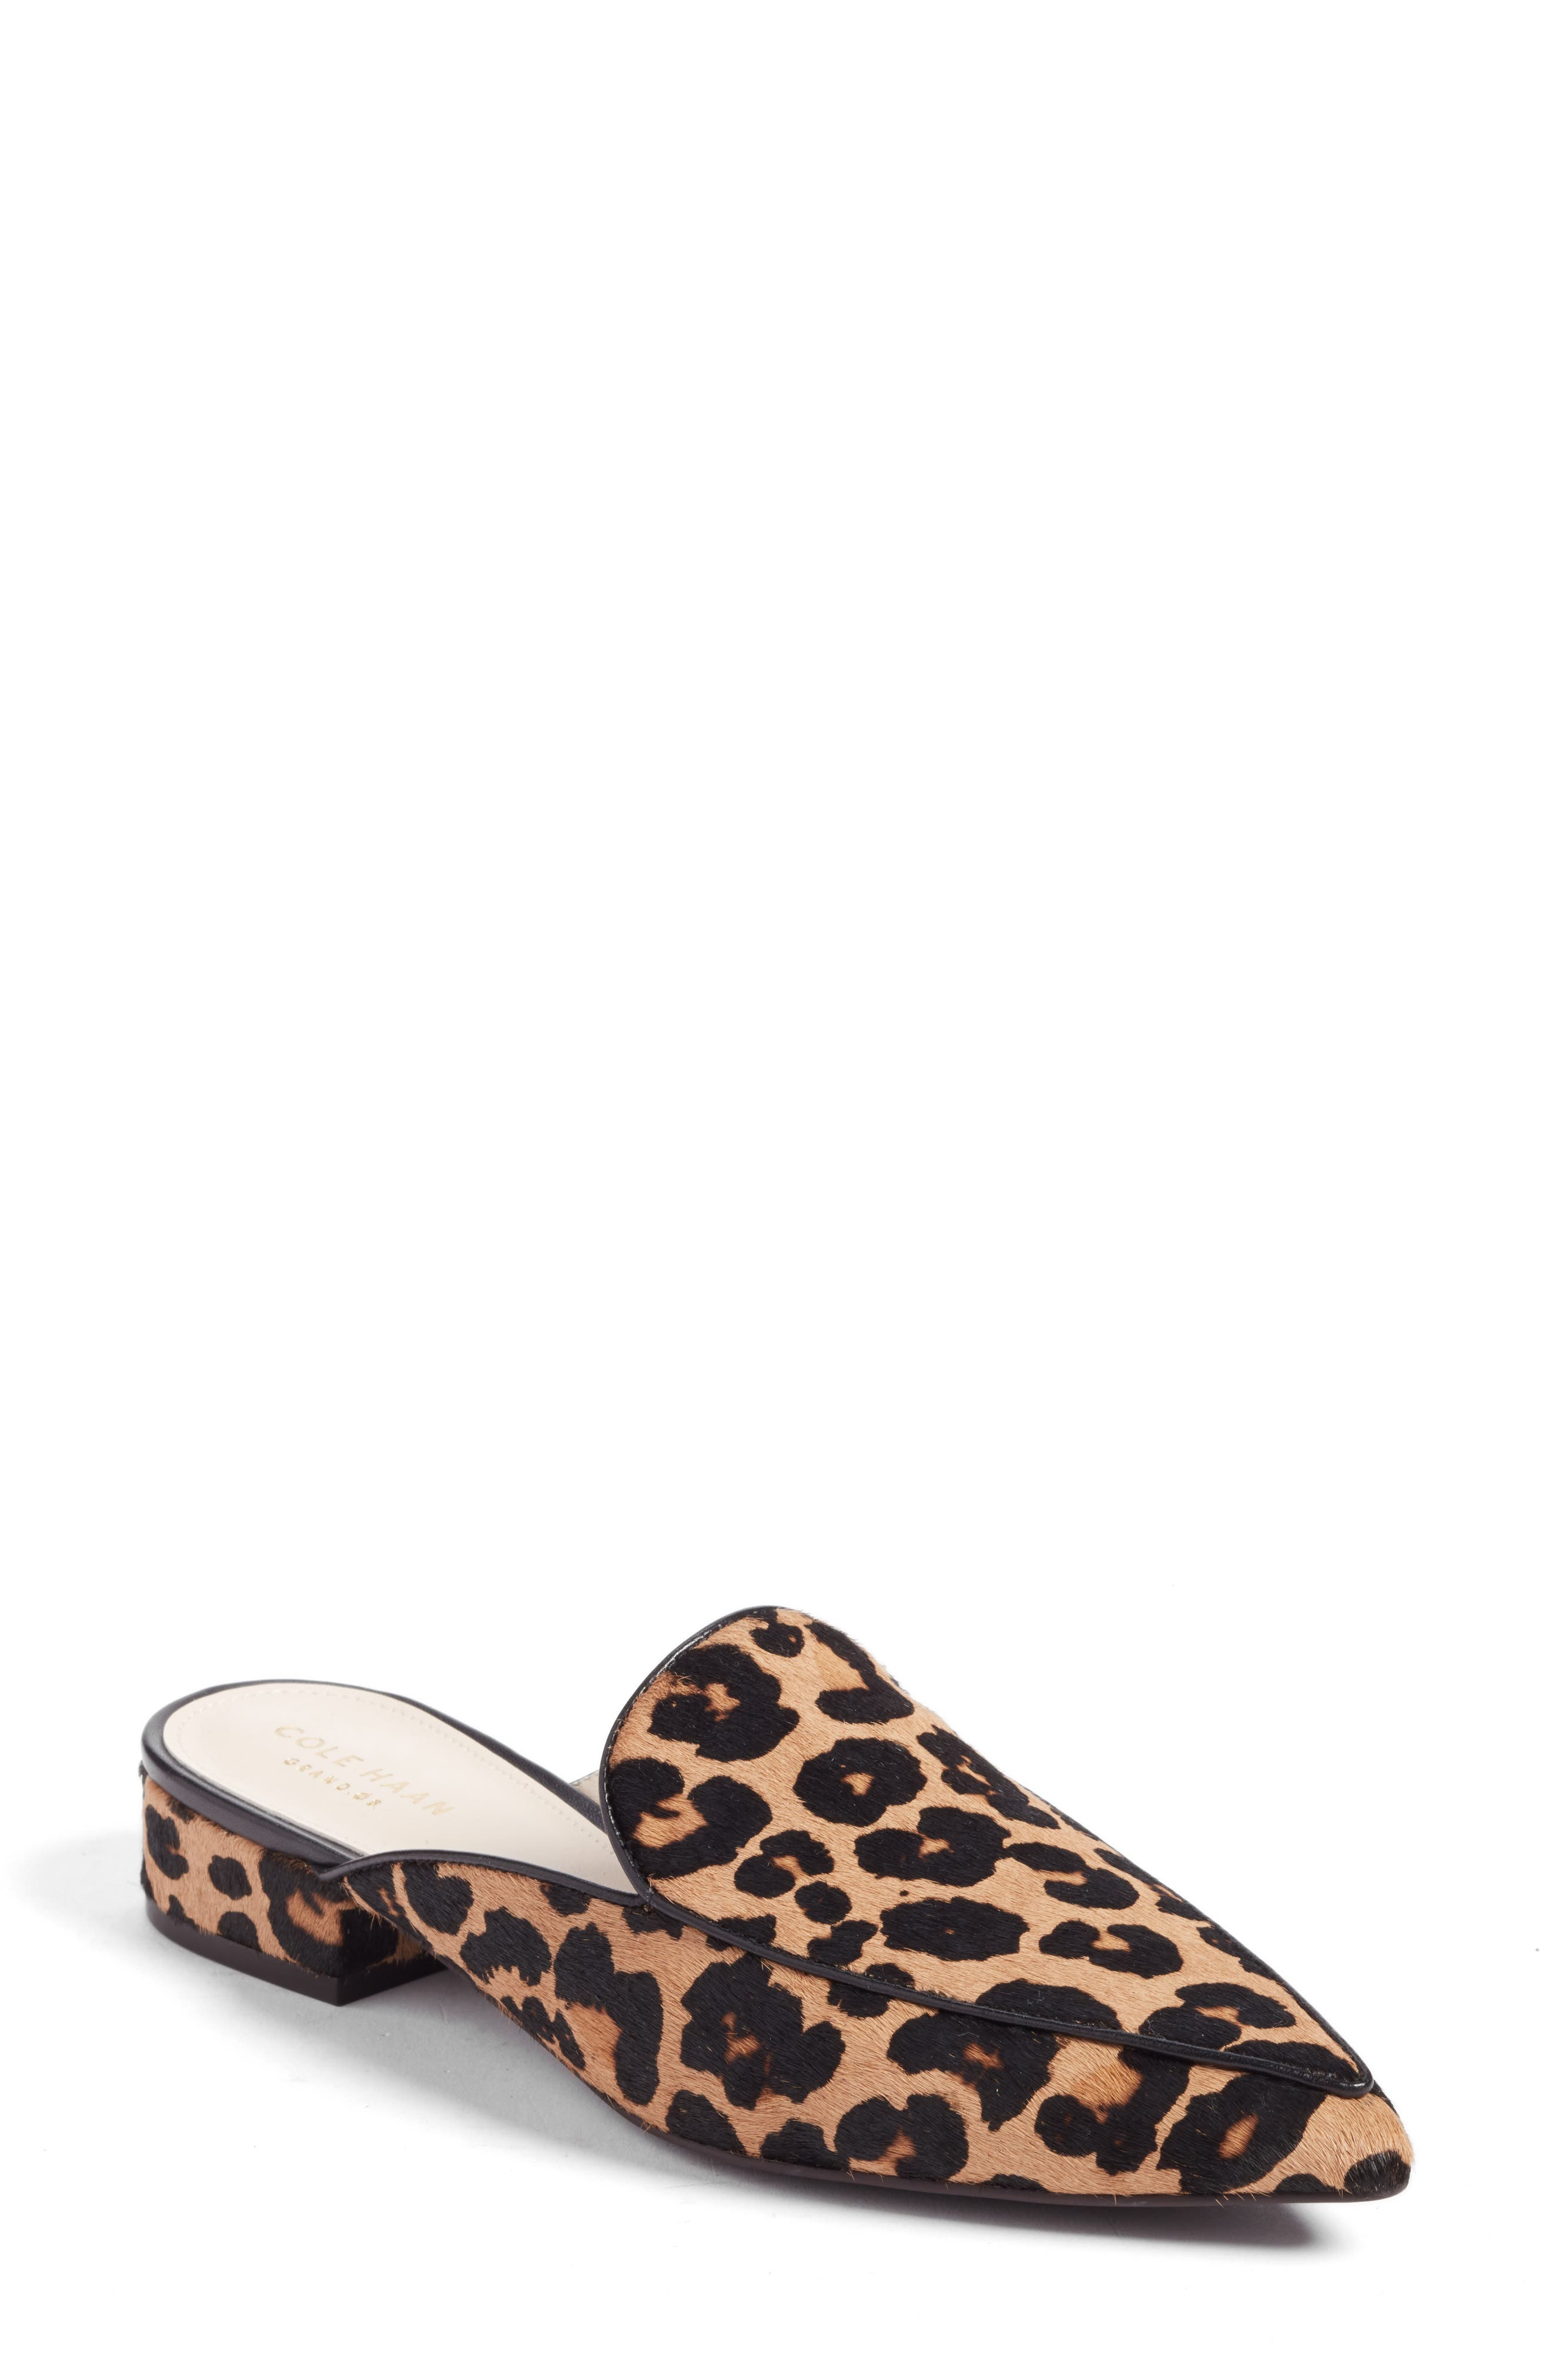 Image of Cole Haan Piper Genuine Calf Hair Loafer Mule